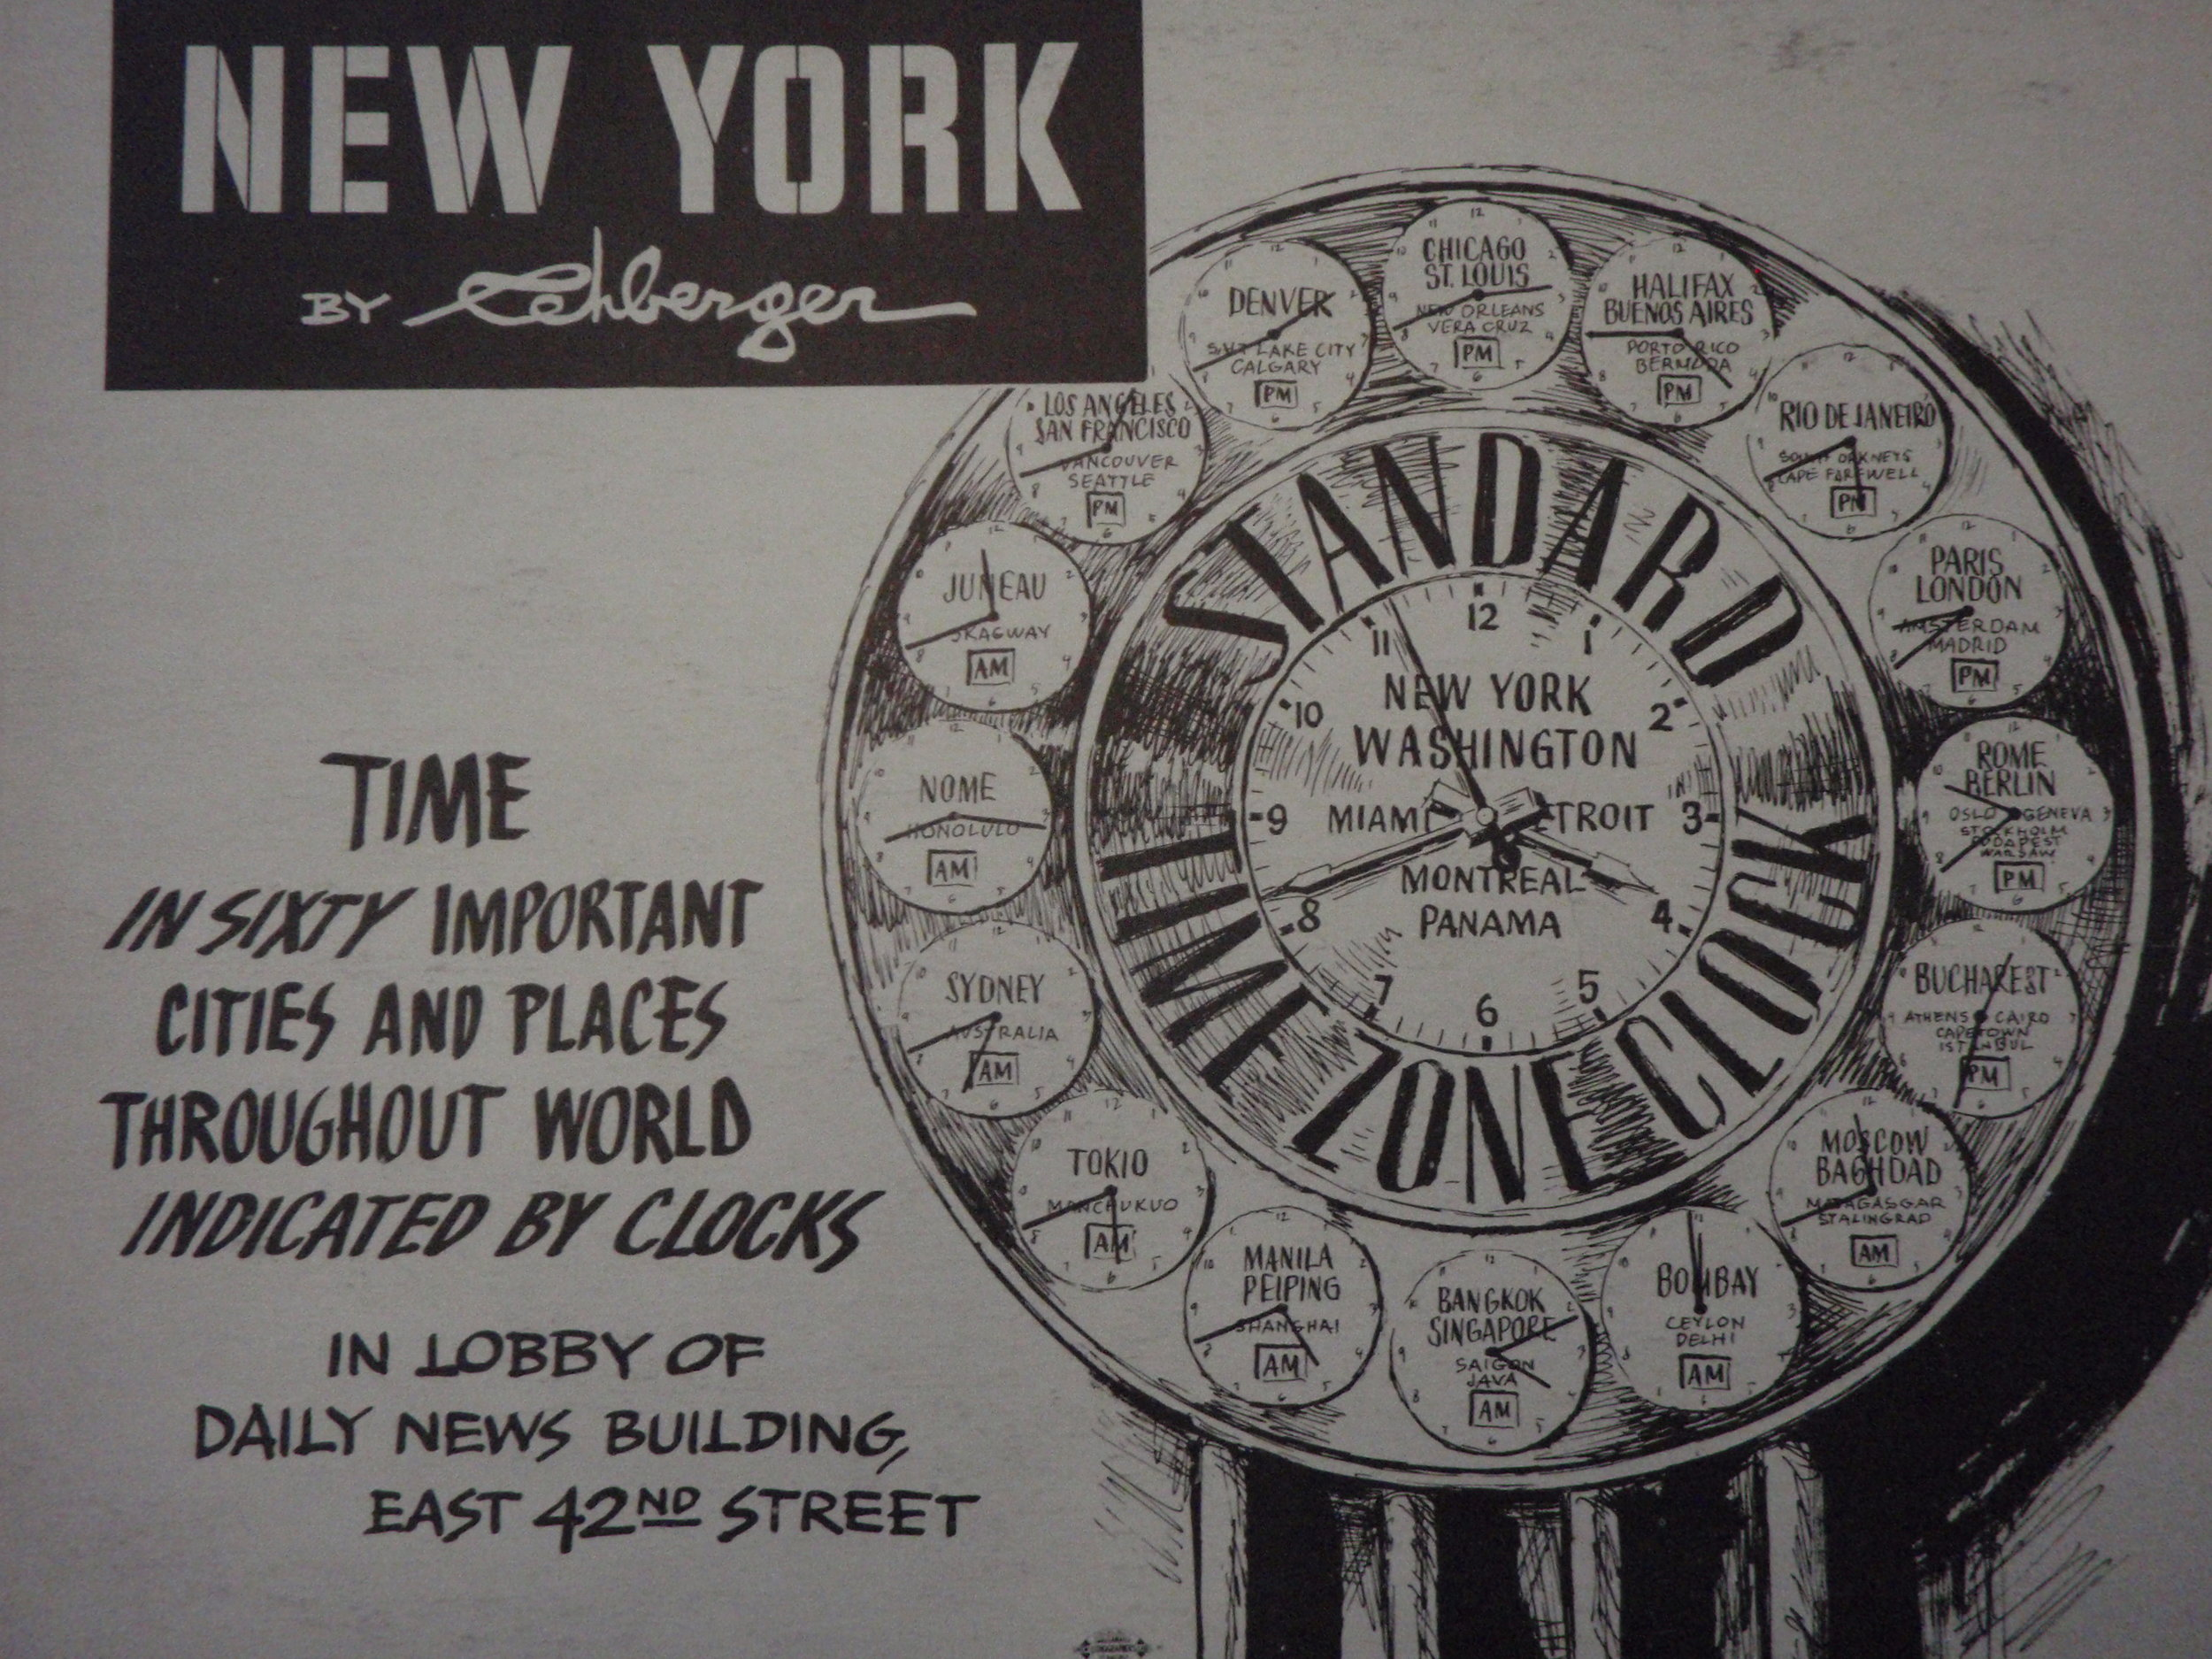 NEW YORK by REHBERGER  1948 #13    Subway Poster  - New York Subways Advertising Co..JPG